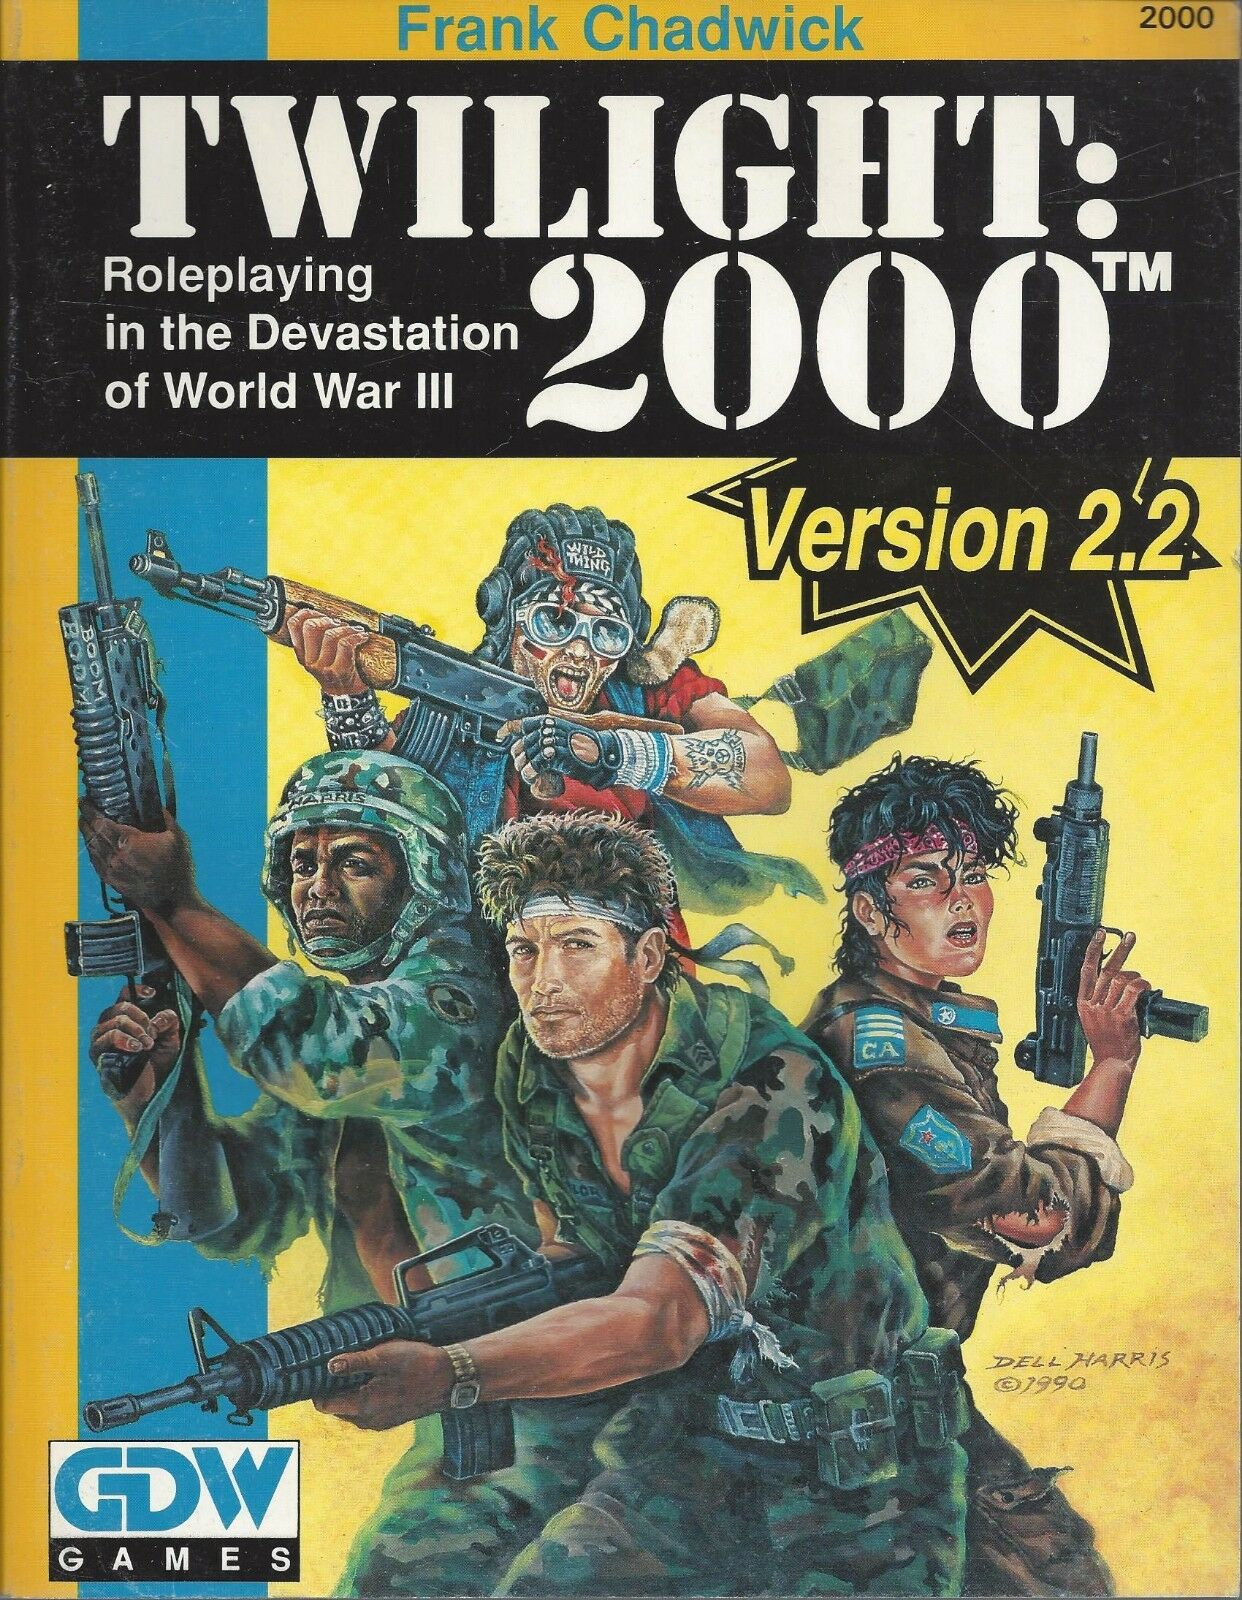 Twilight 2000  RPG SC Version 2.2  NEW  OOP   FREE Priority Mail  GDW Games